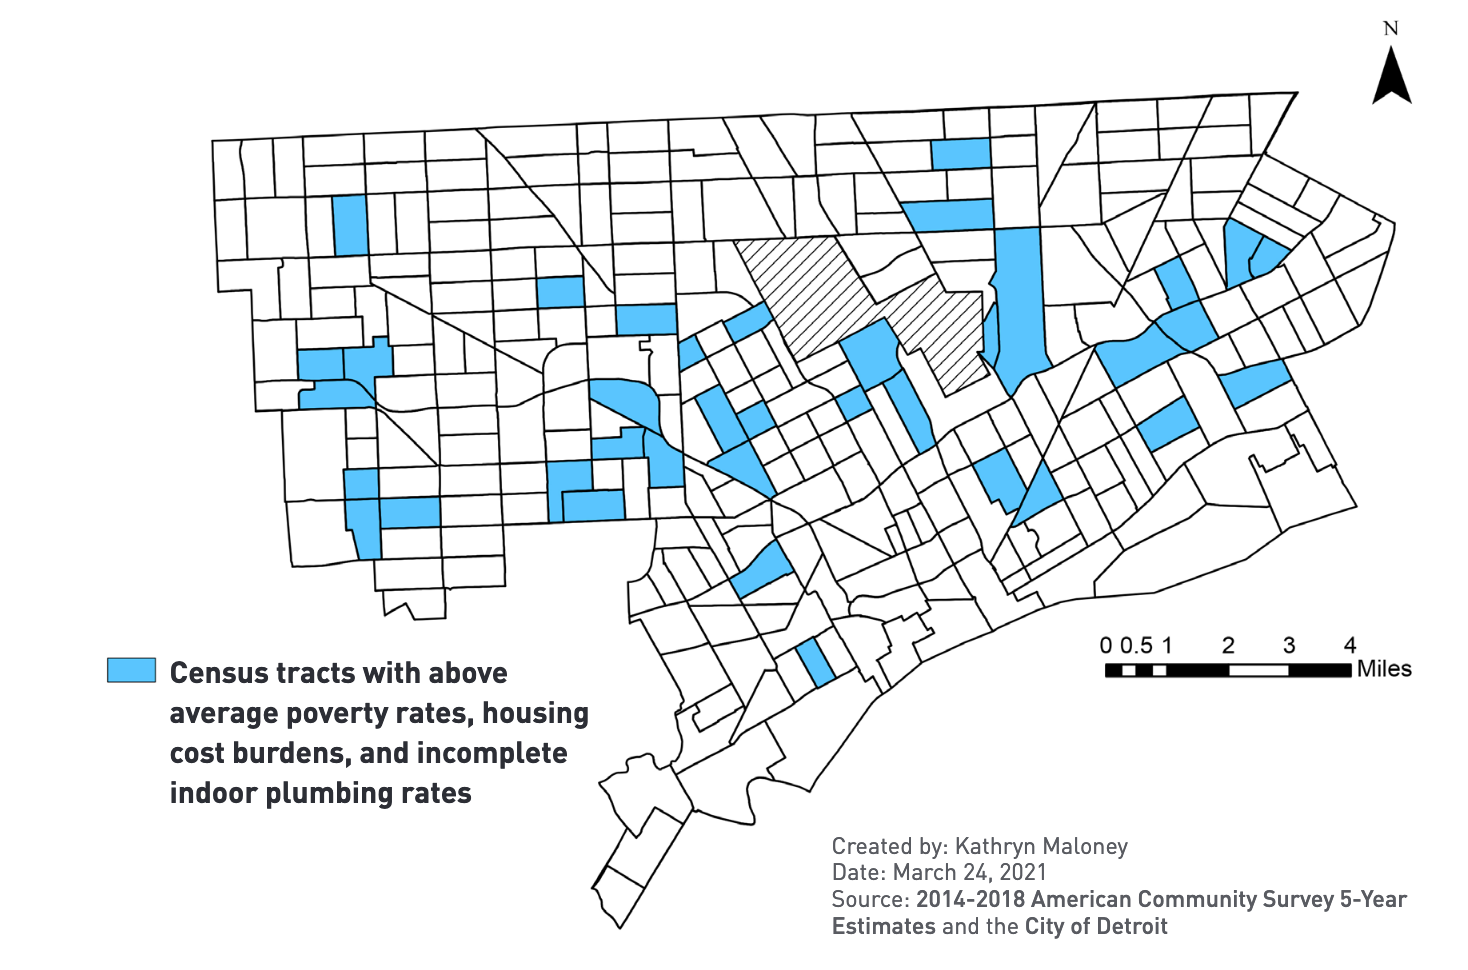 """In a new study of water access and affordability in Detroit, University of Michigan researchers determined that about 10% of the city's population is """"triple burdened,"""" meaning those residents face higher than average rates of poverty, housing cost burden, and incomplete plumbing. The researchers analyzed census tracts and mapped the overlap between various factors that affect water affordability. Image credit: From """"Addressing the Links Between Poverty, Housing and Water Access and Affordability in Detroit,"""" University of Michigan Poverty Solutions, June 2021."""